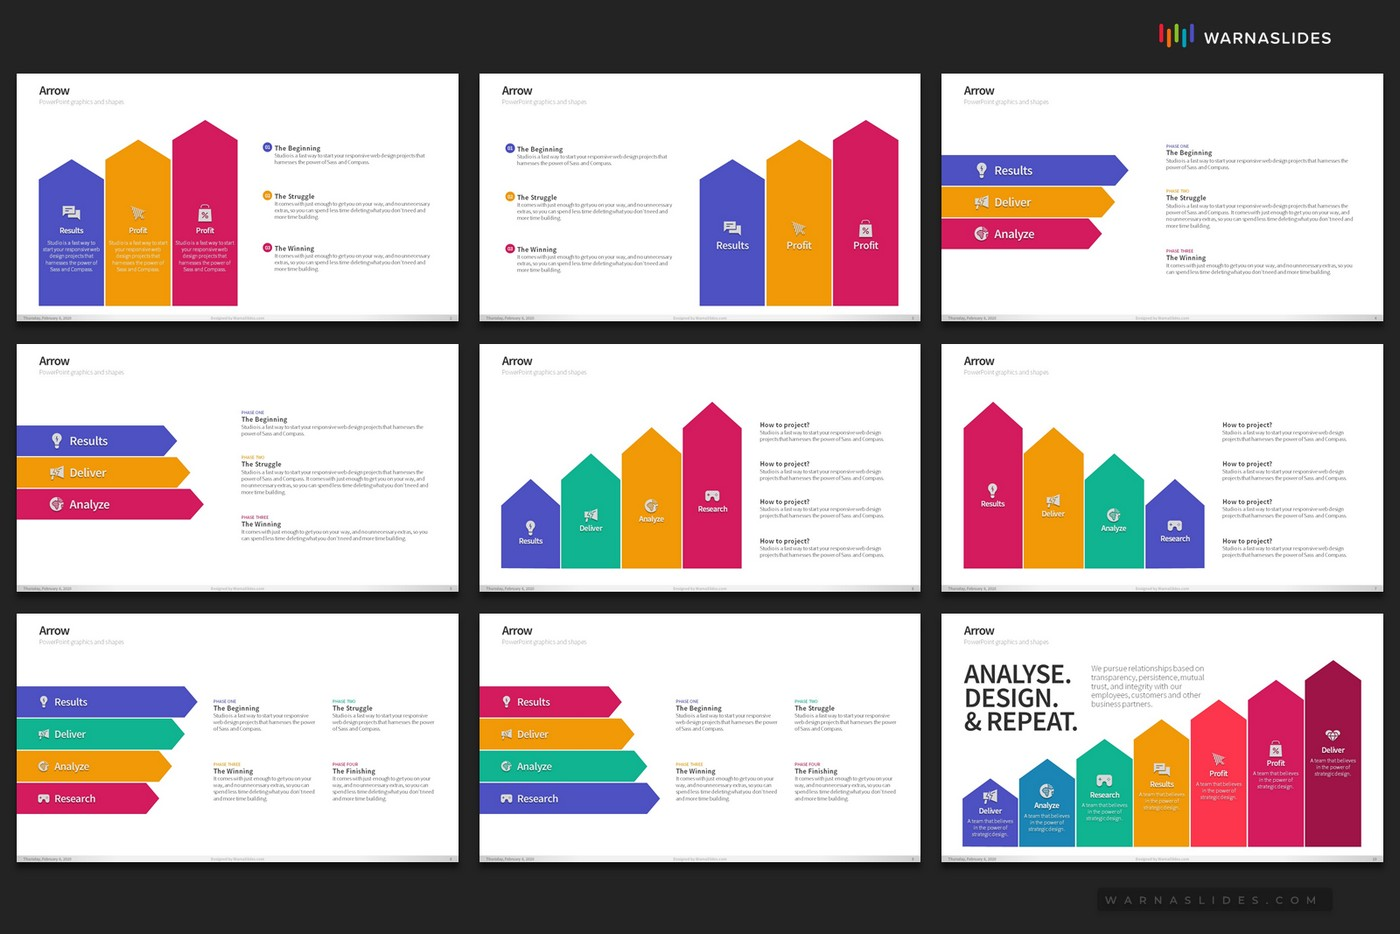 Arrows-Chevron-Ladder-Growth-PowerPoint-Template-for-Business-Pitch-Deck-Professional-Creative-PowerPoint-Icons-007